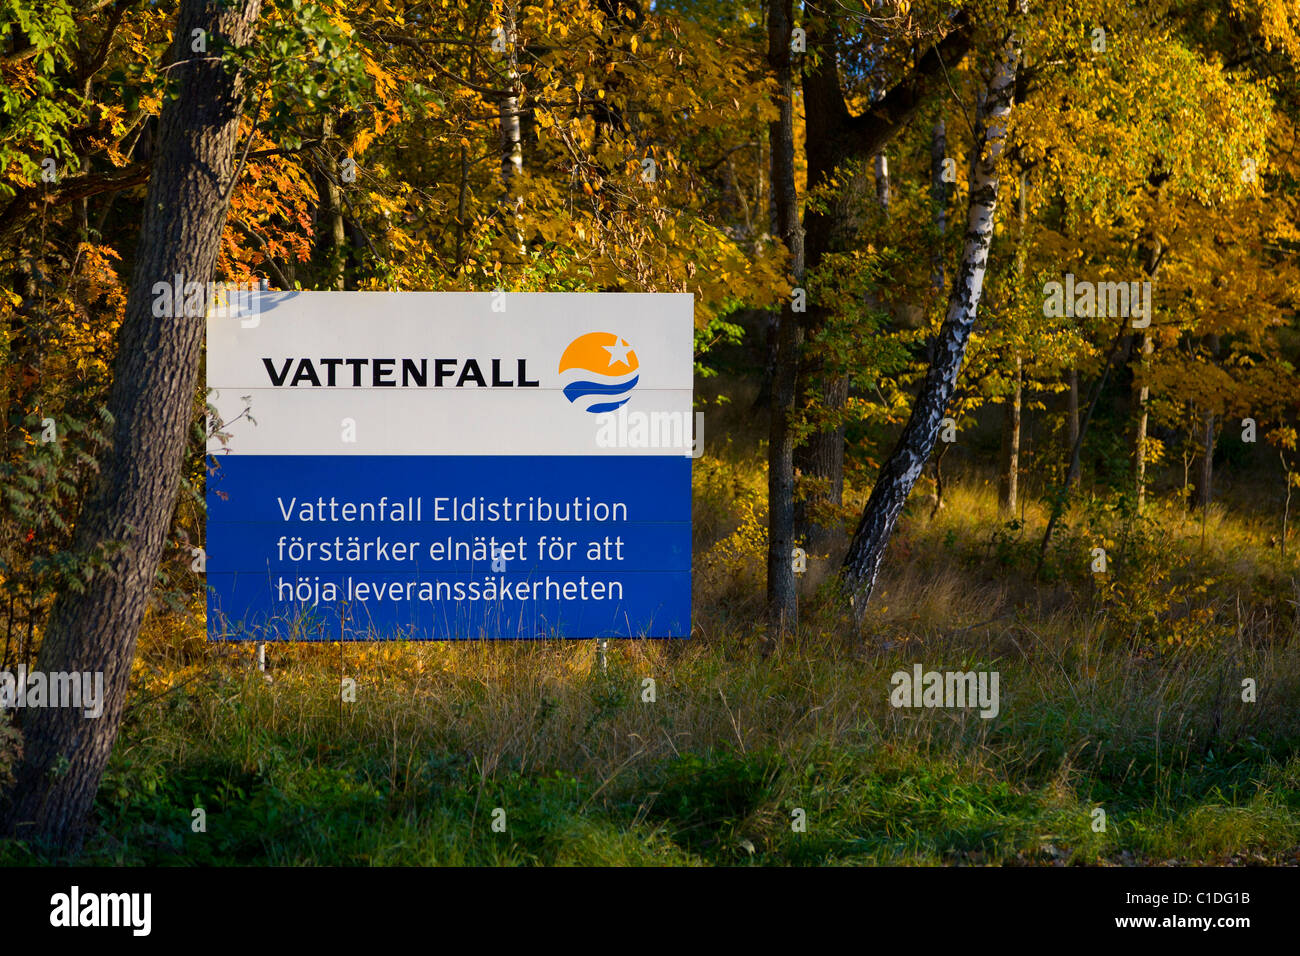 Vattenfall sign board - Stock Image